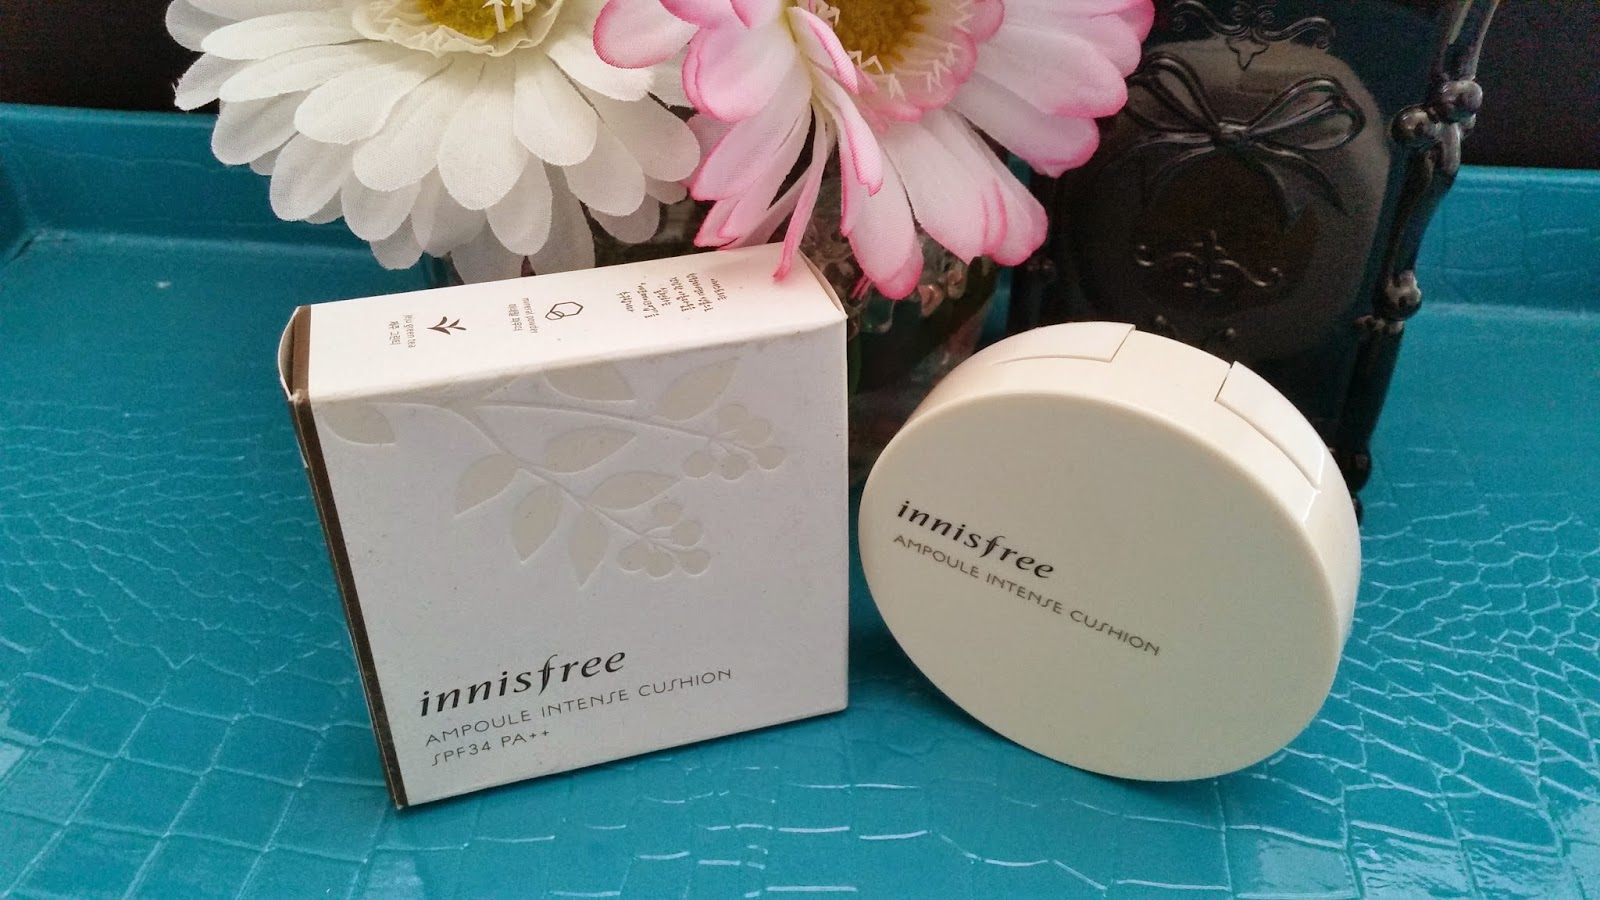 Ampoule Intense Cushion and outer box